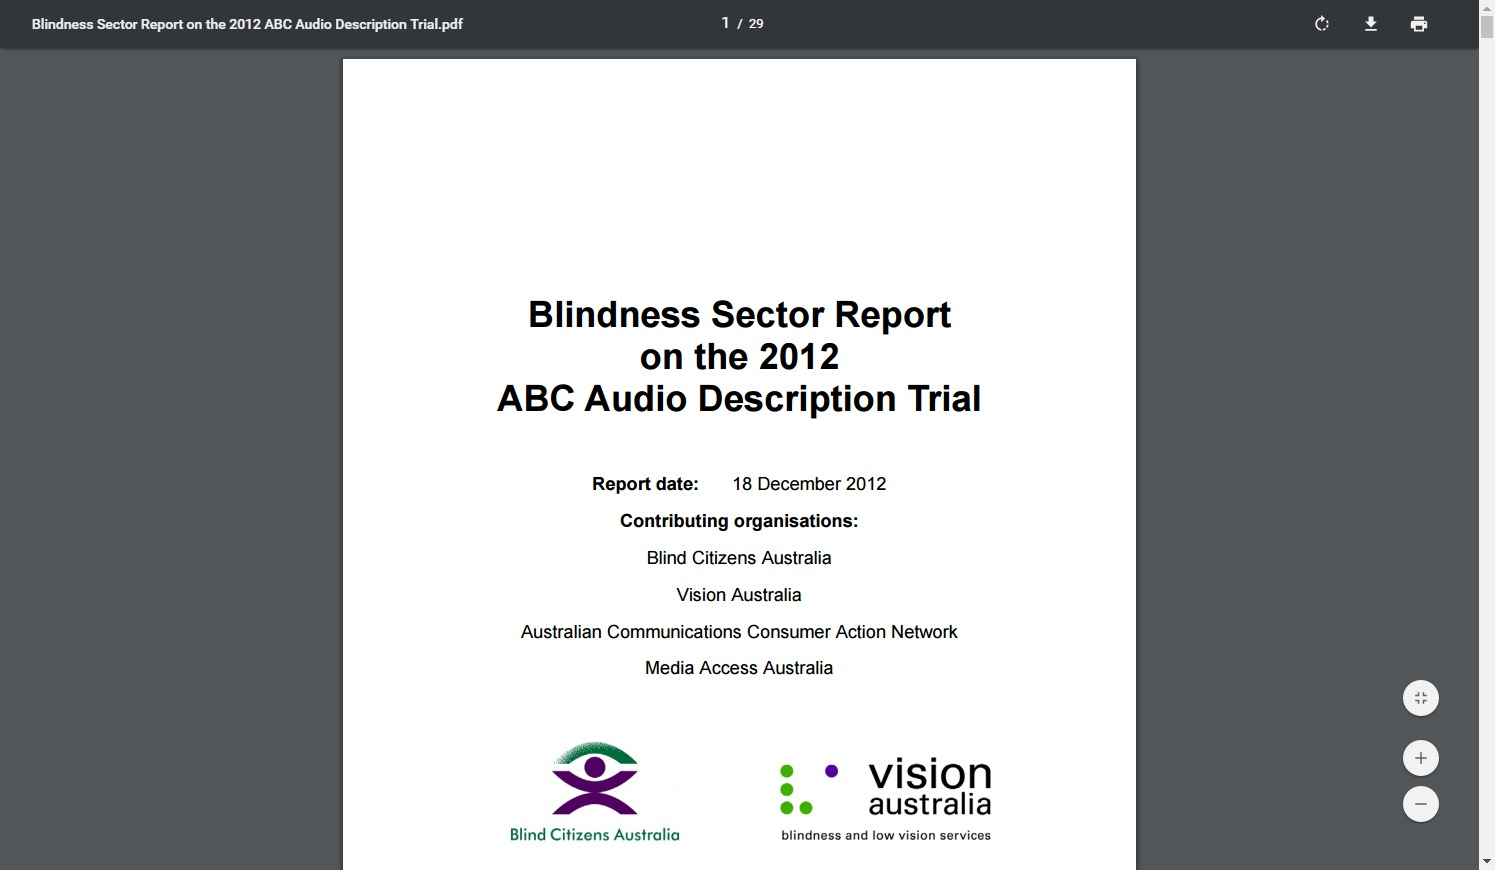 Blindness Sector Report on the 2012 ABC Audio Description Trial